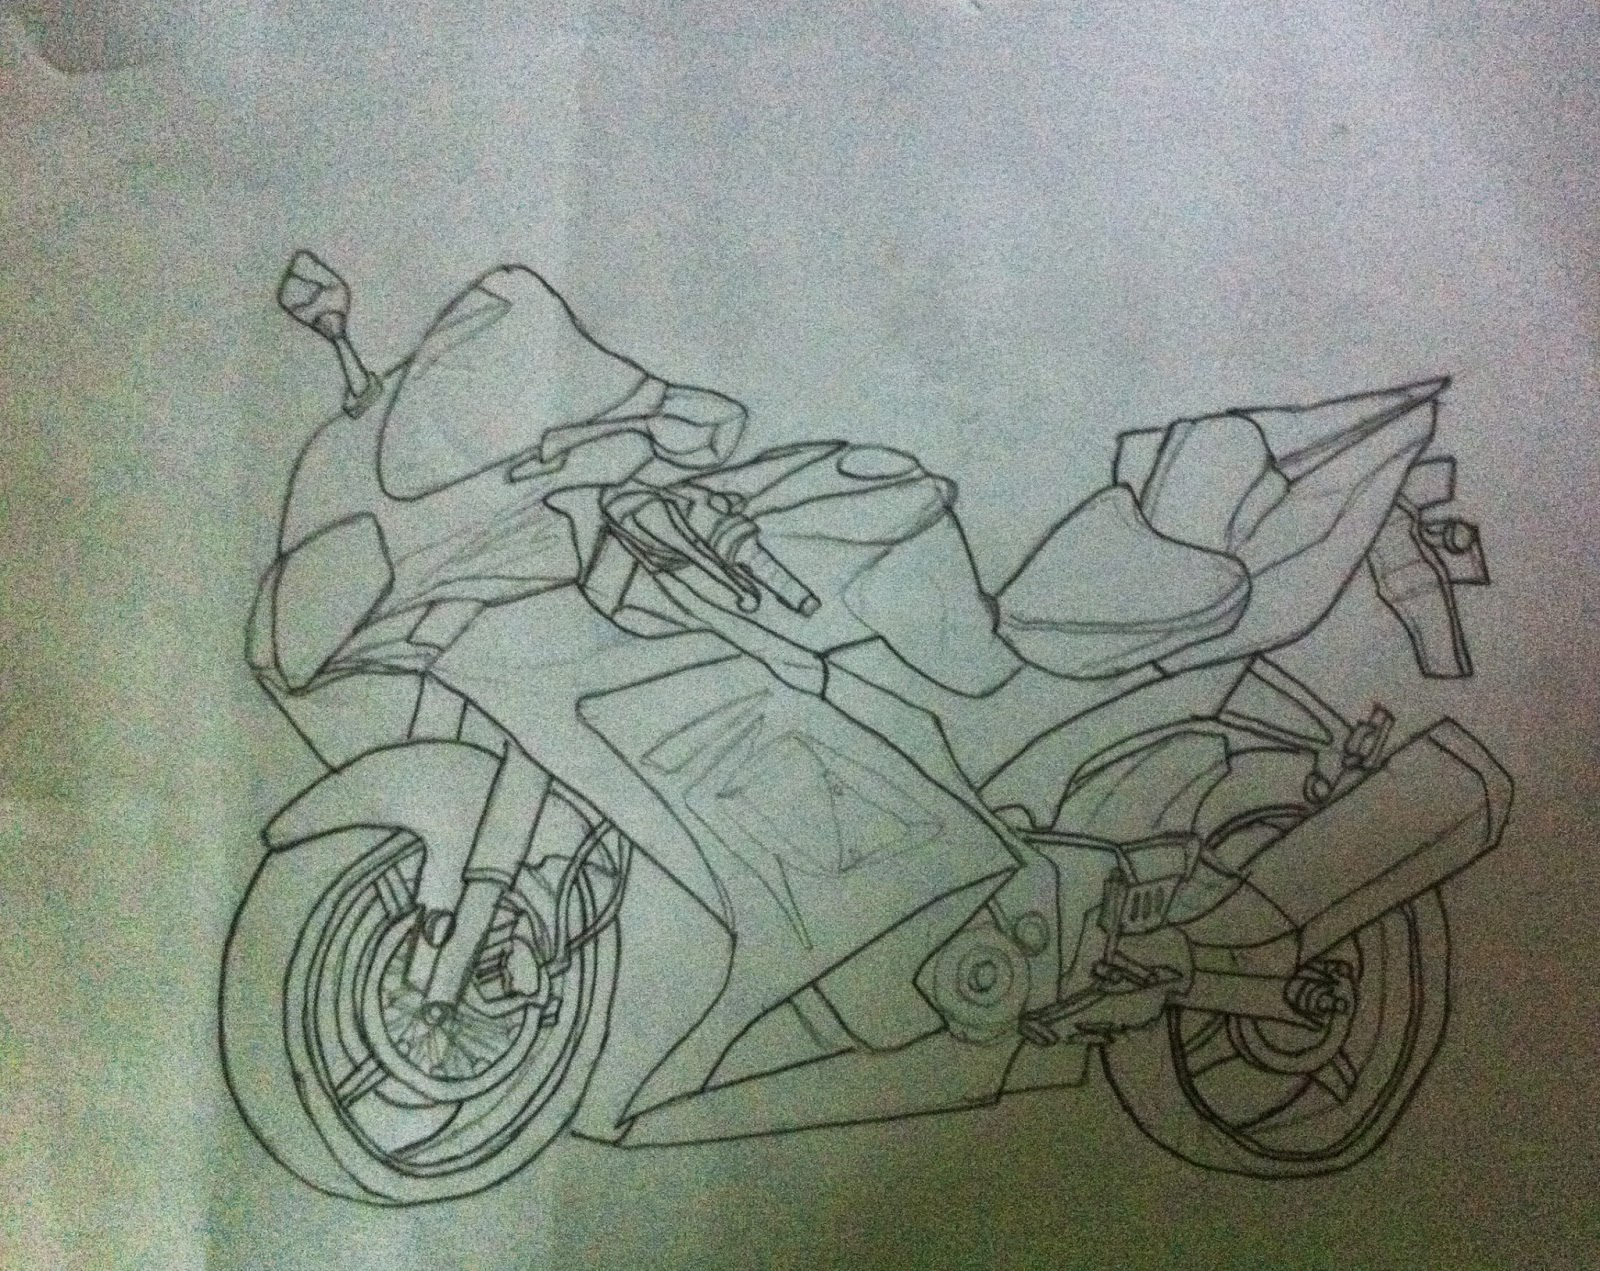 1600x1271 Pencil Sketch Bike 4 Best Drawing Techniques To Make Pencil